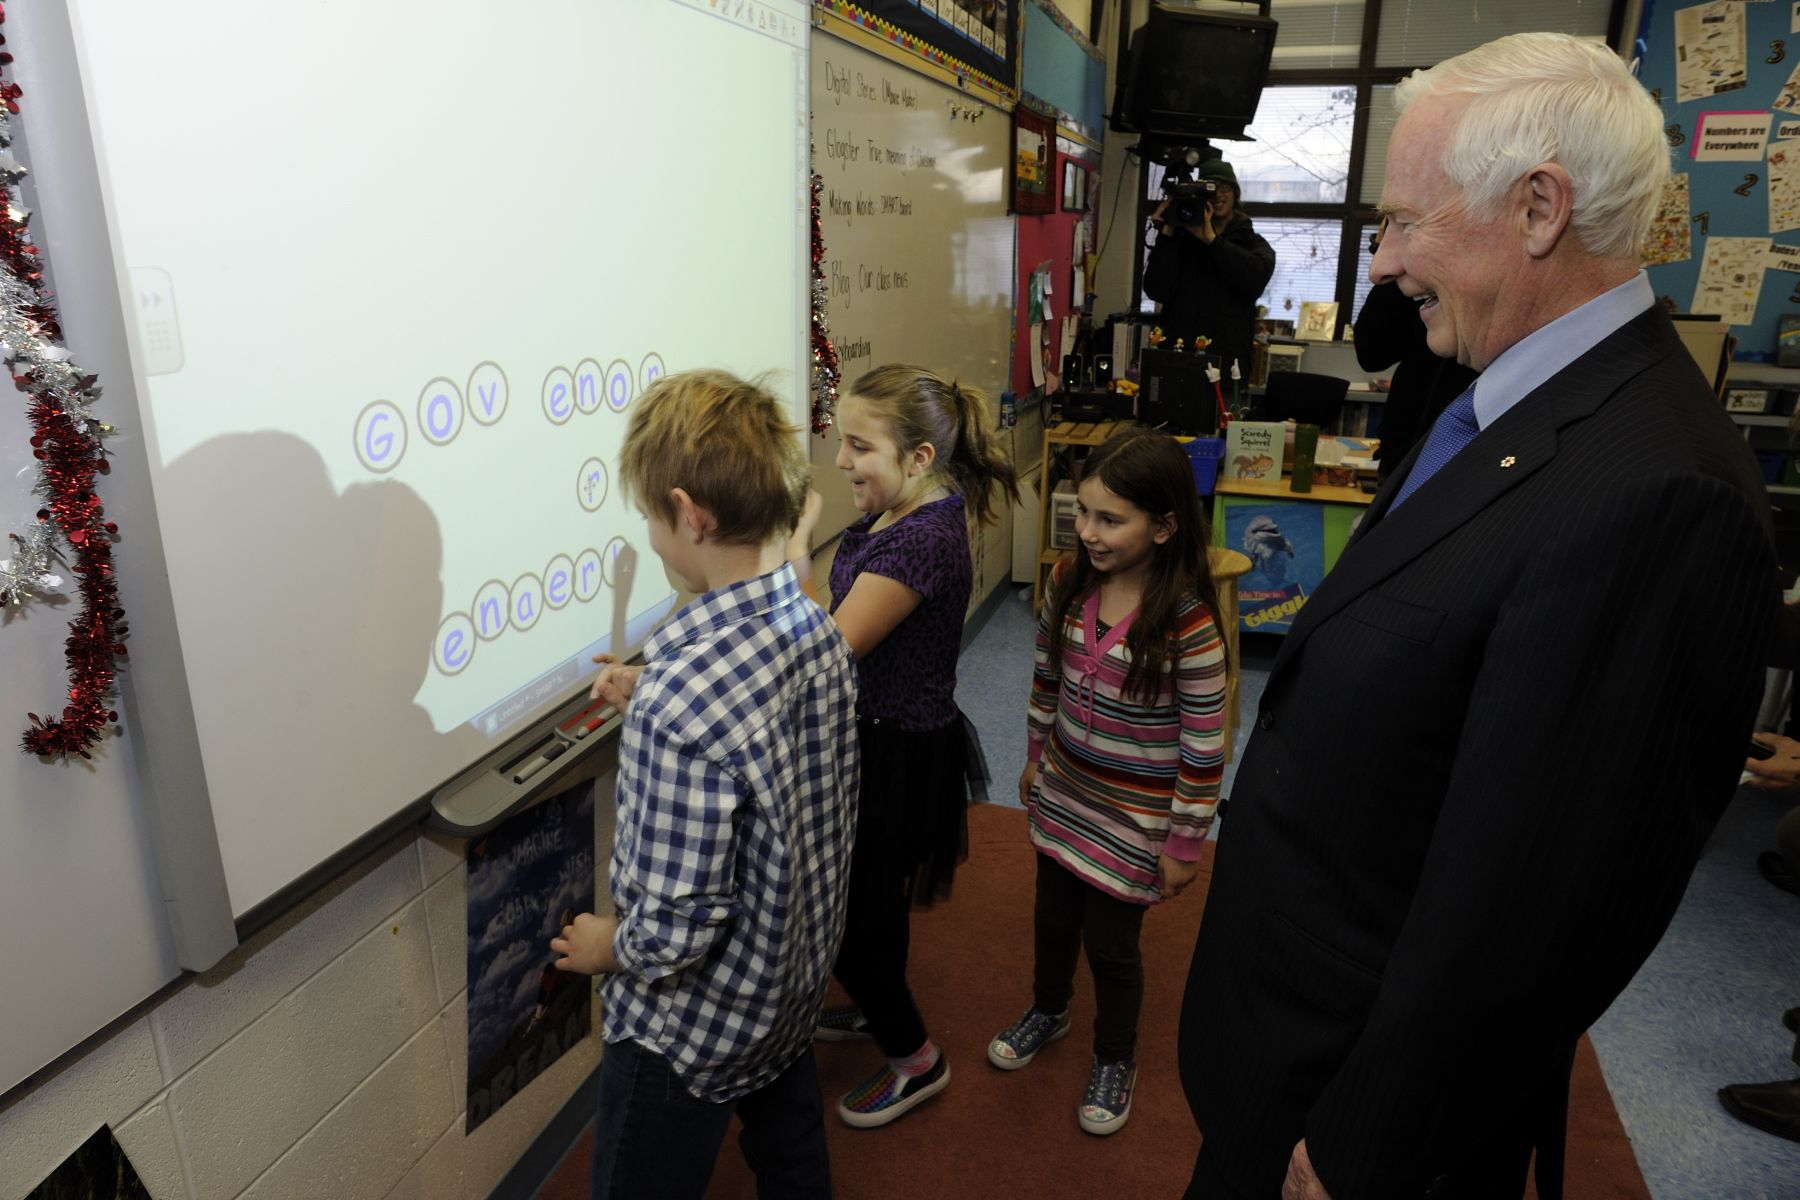 The school uses video games and video boards in classrooms to educate students from Grades 2 to 6.